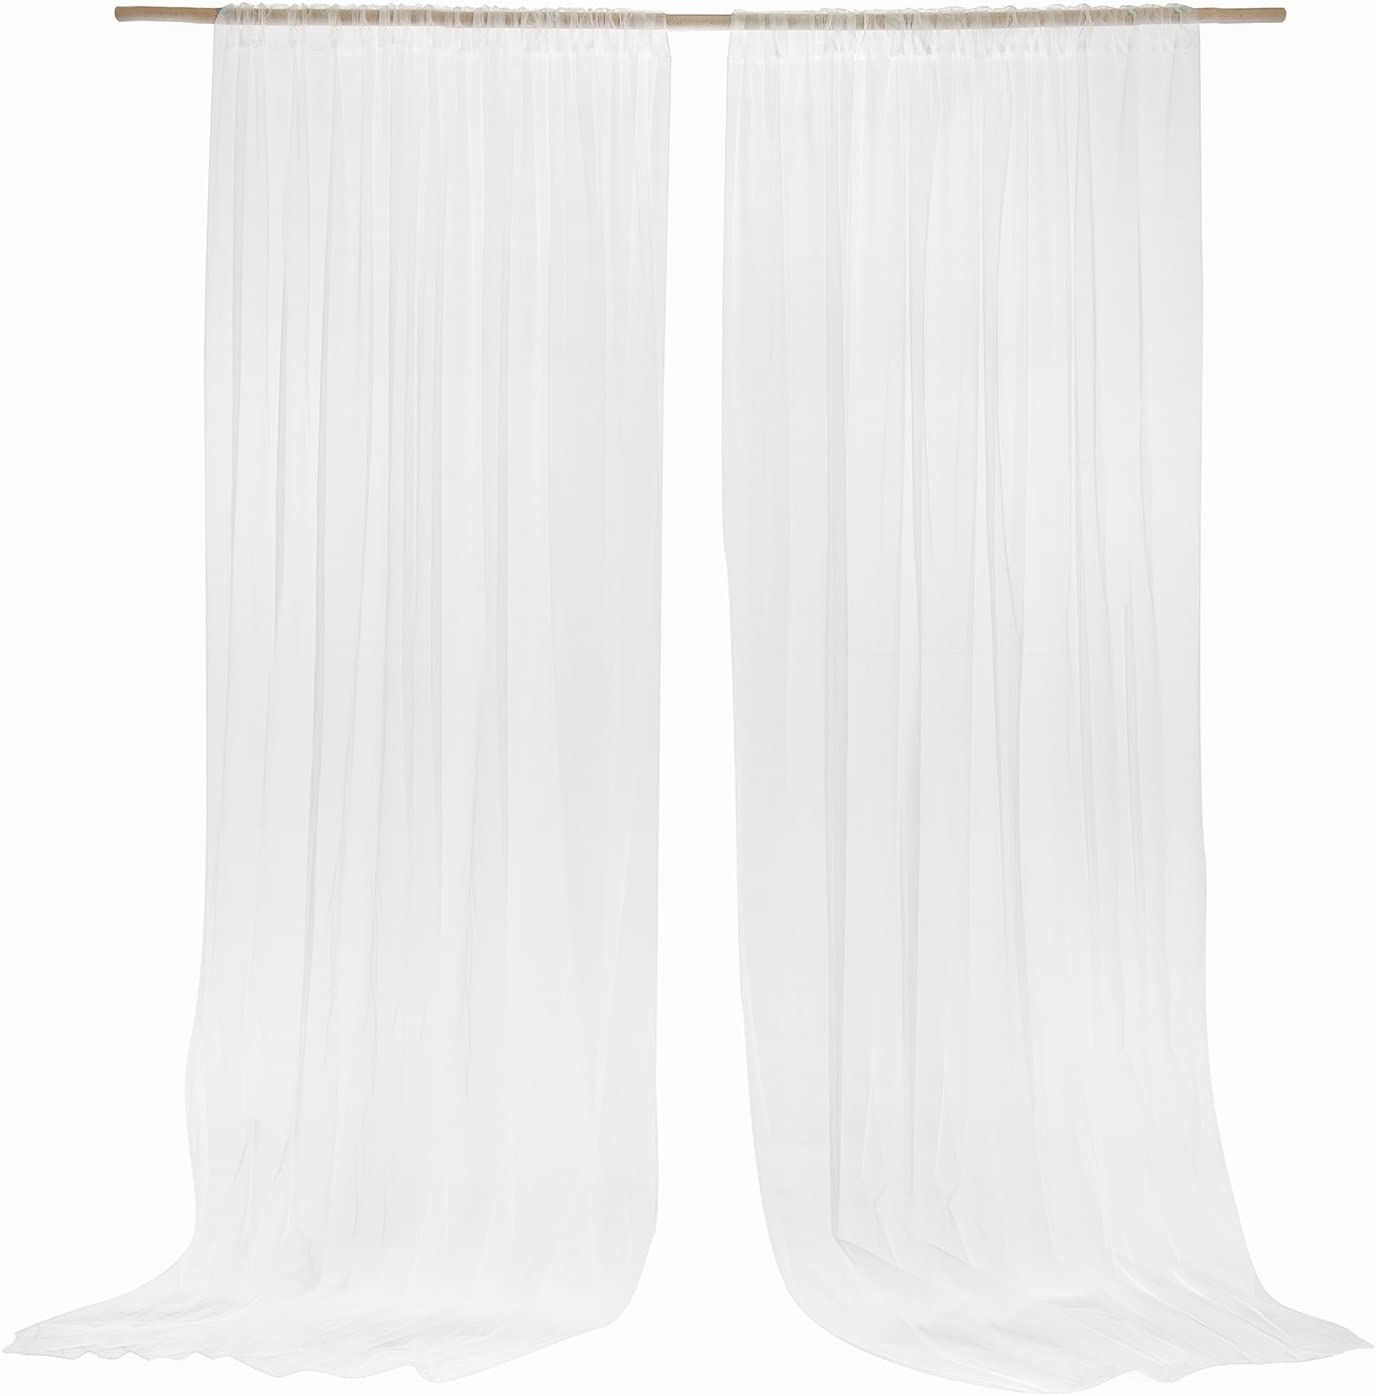 Ling's moment Wrinkle-Free White Sheer Backdrop Curtains 10ft x 10ft Chiffon Fabric Drapes for Wedding Ceremony Arch Party Stage Decoration